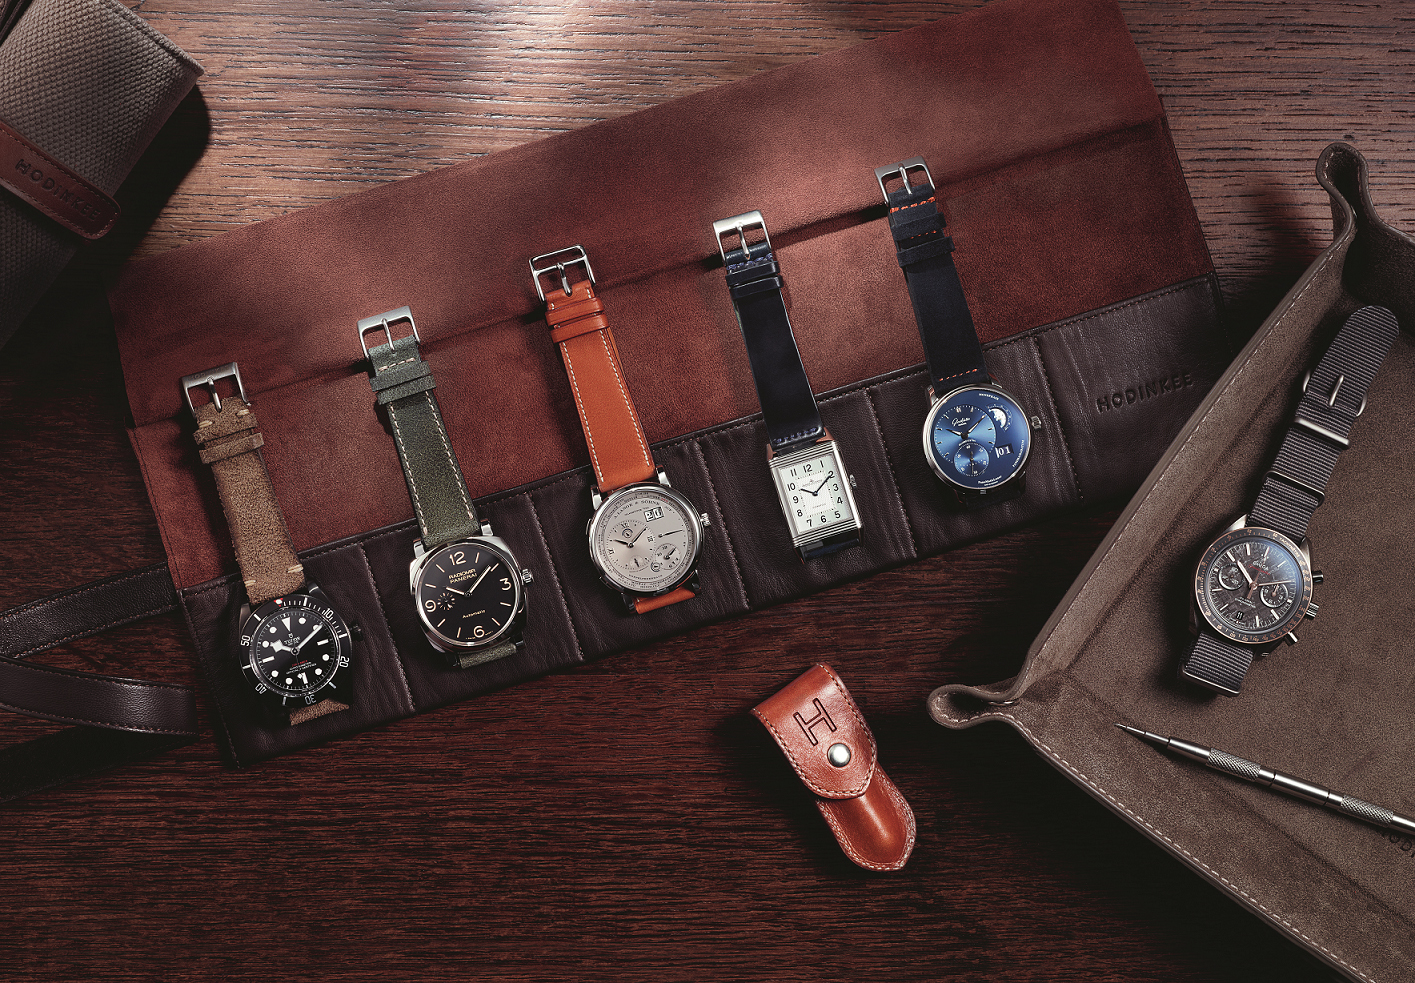 hodinkee-straps-and-watches